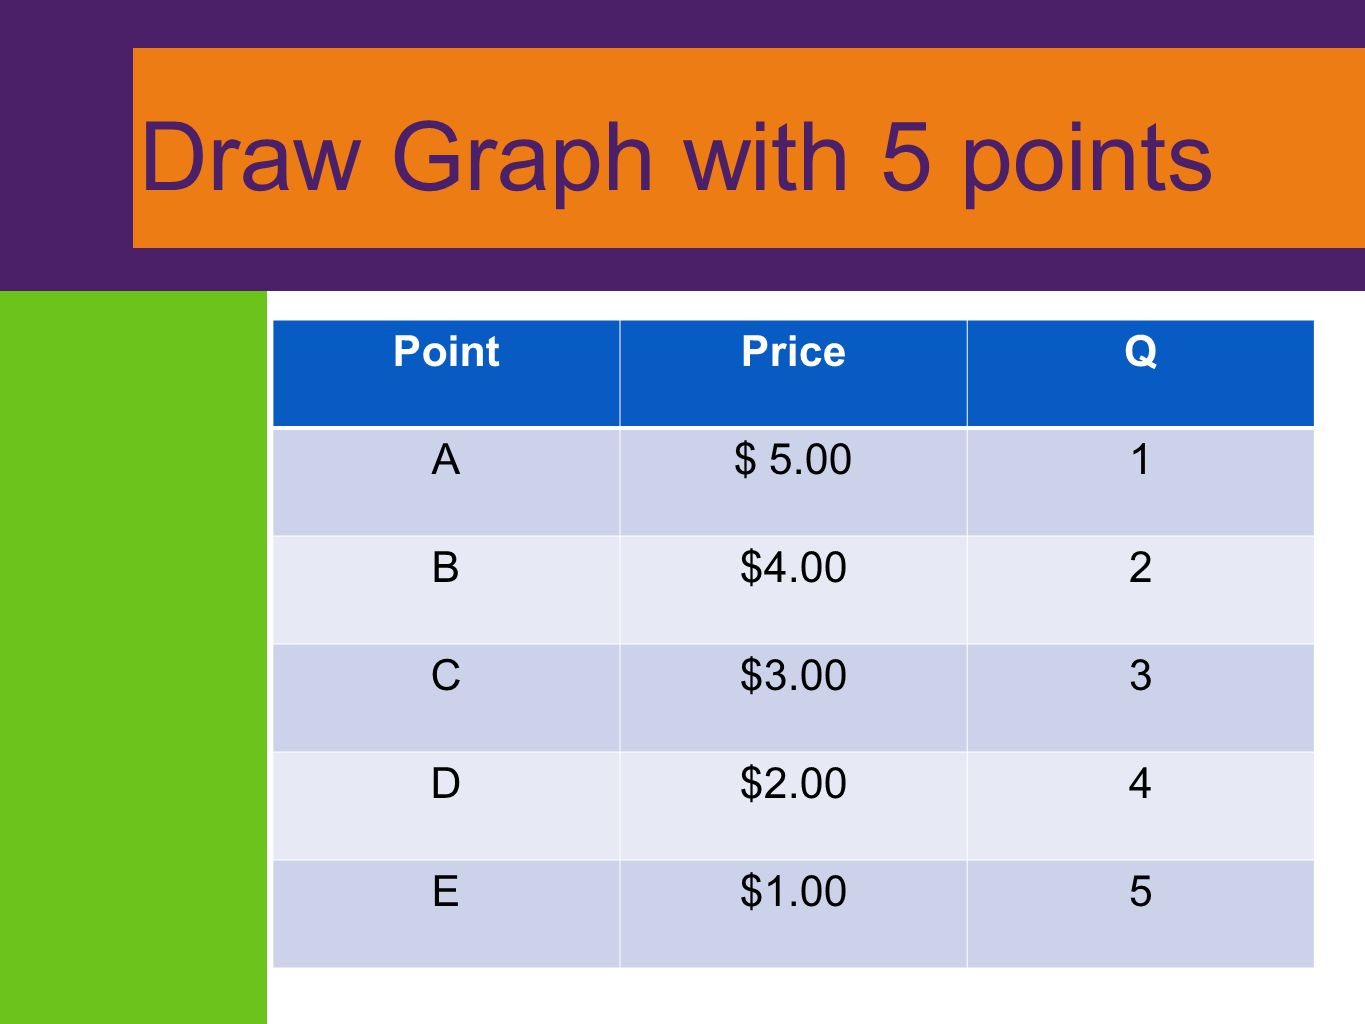 Draw Graph with 5 points Point Price Q A $ 5.00 1 B $4.00 2 C $3.00 3